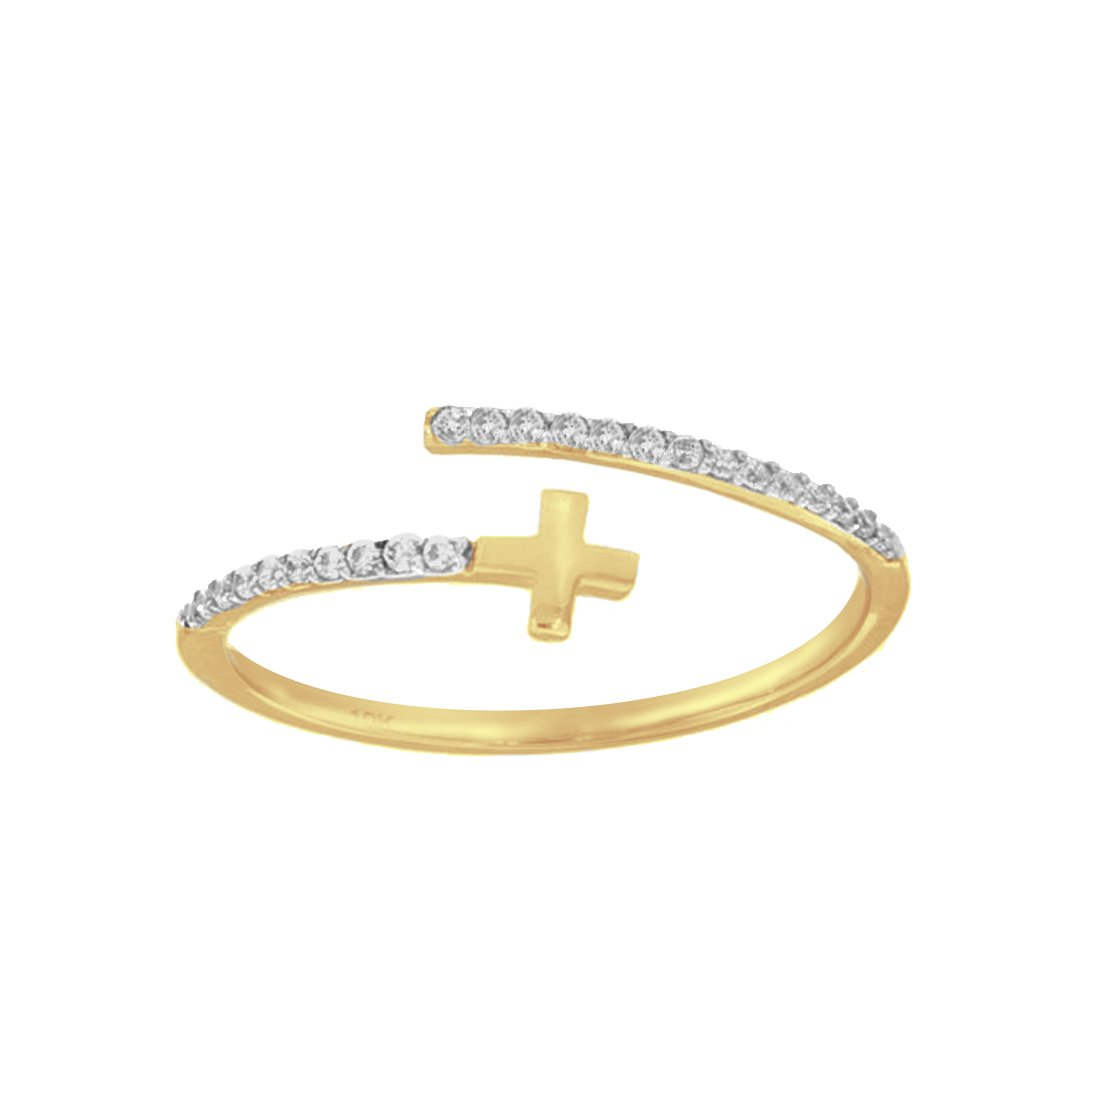 Anillo Oro 10k, con Cruz Lisa y Zirconias Laterales